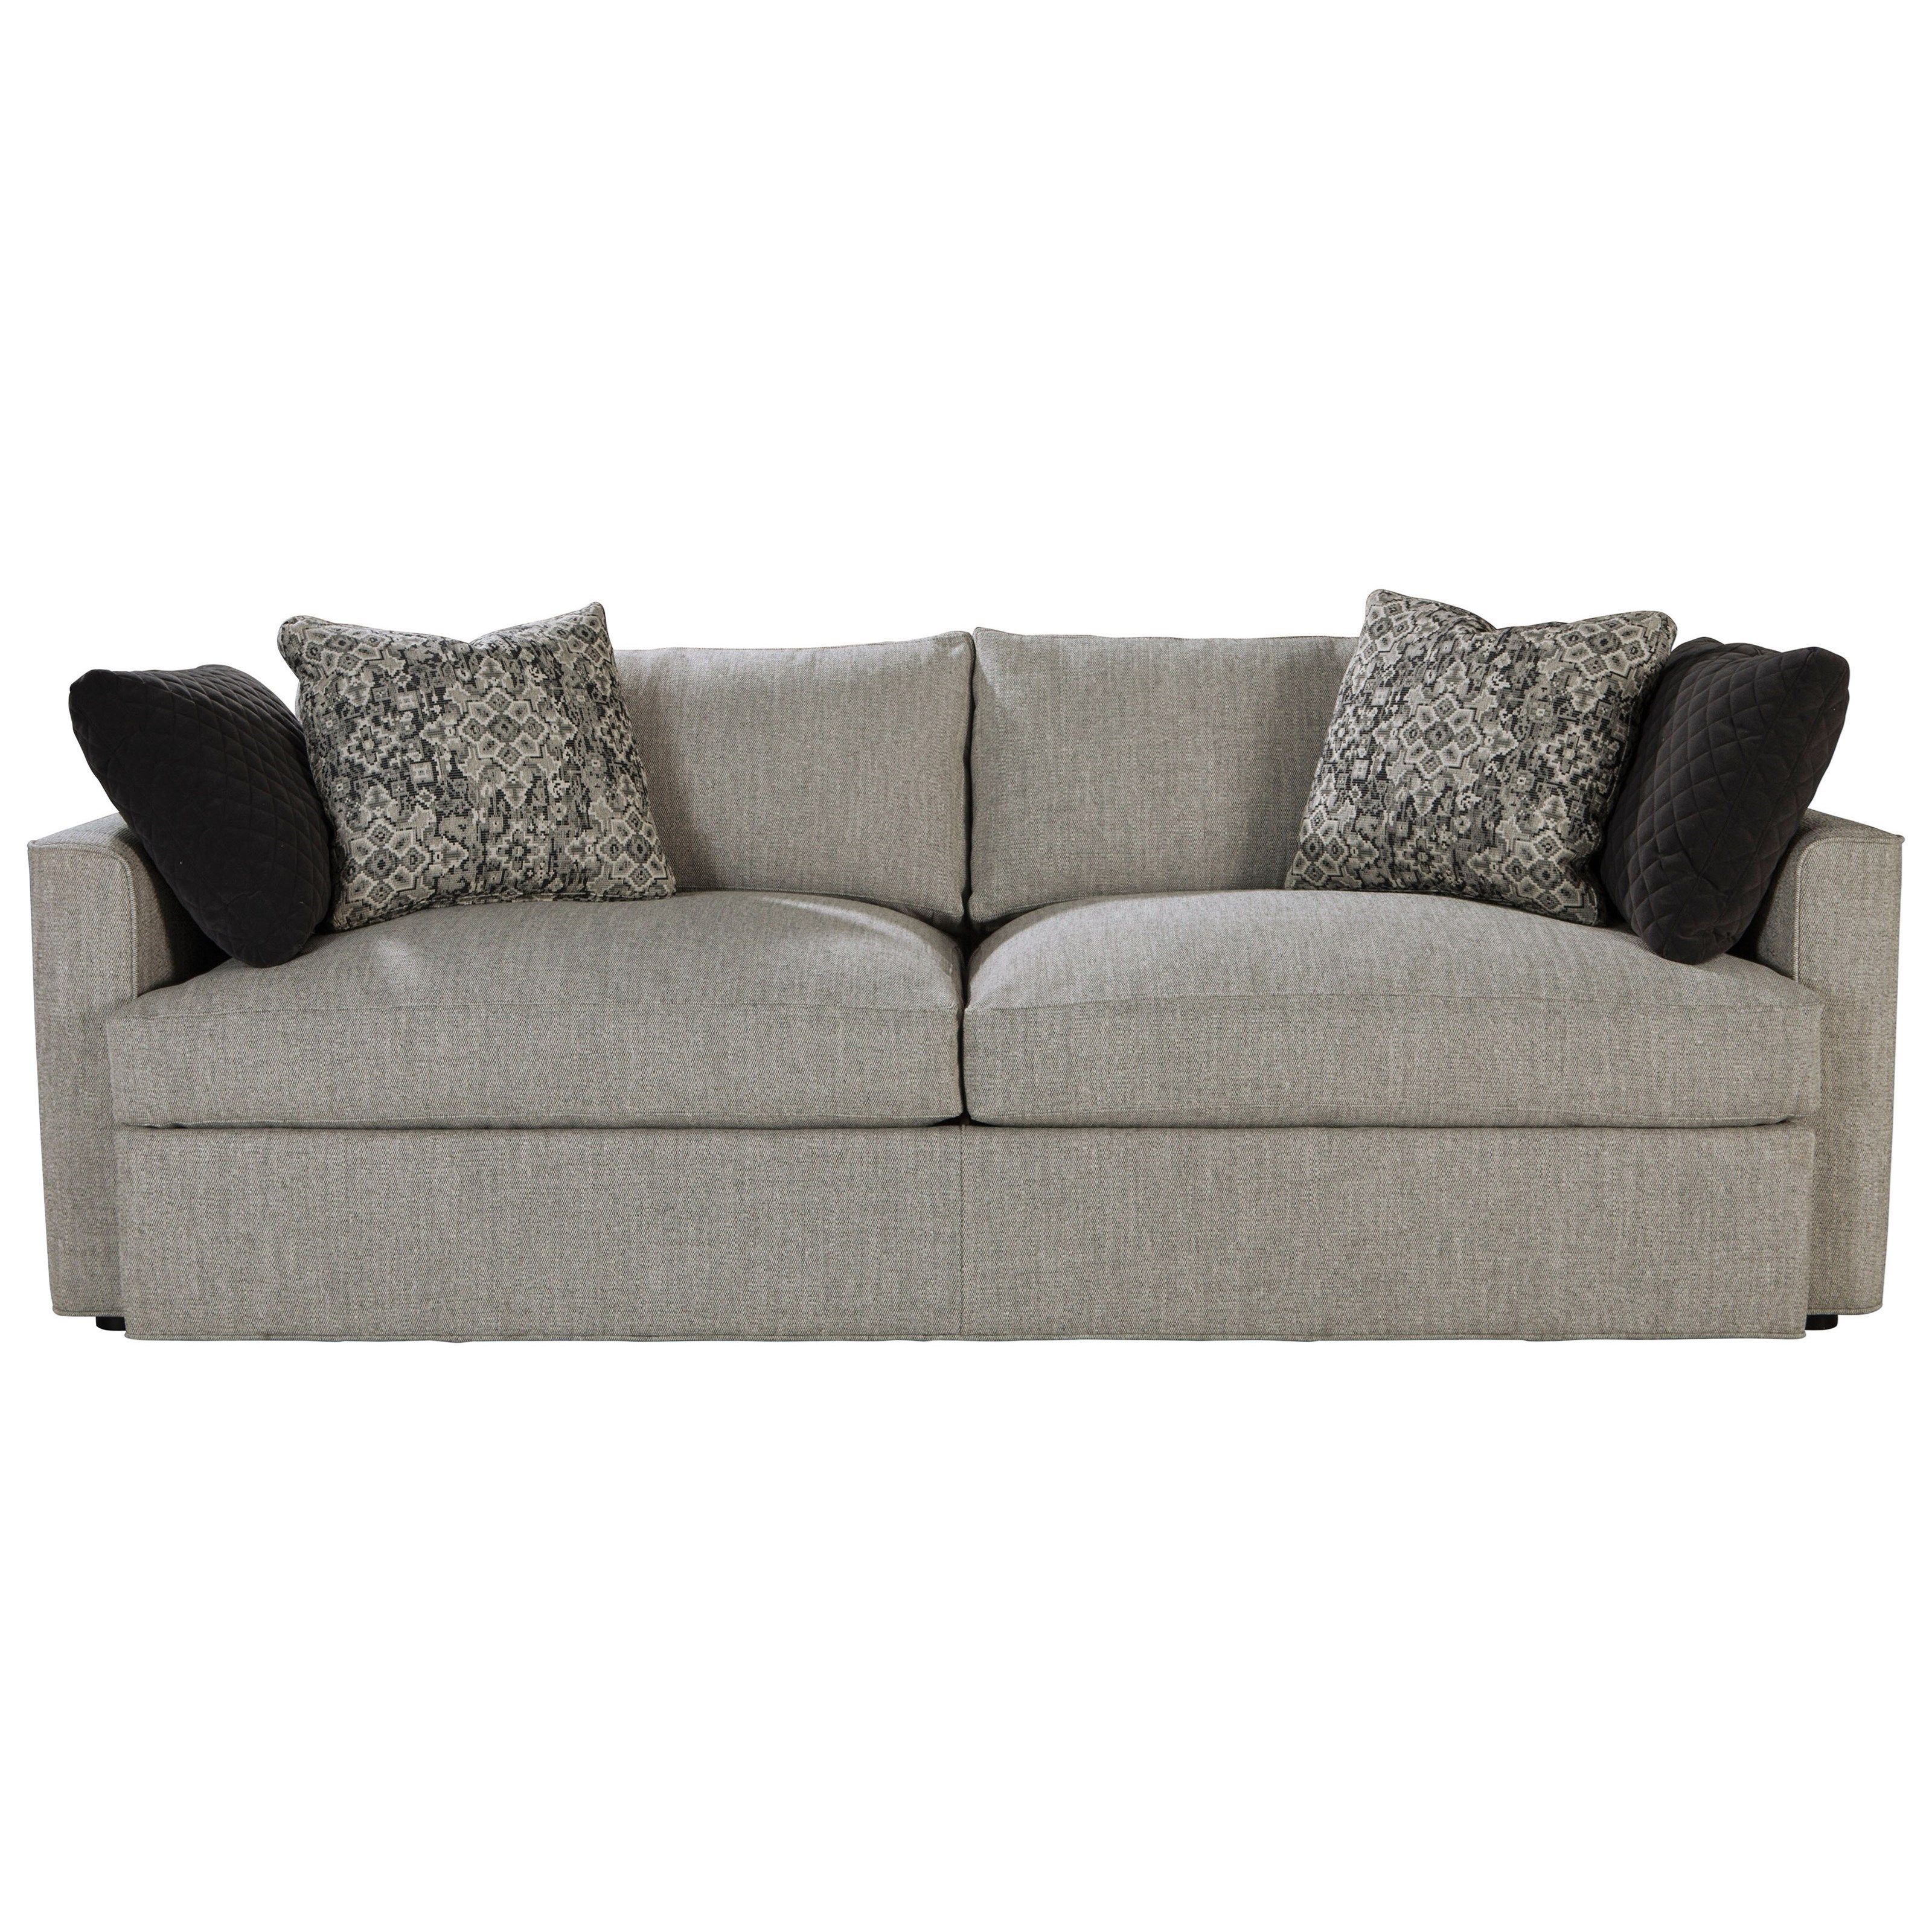 the ladera sofa is casually modern with a clean recessed arm and